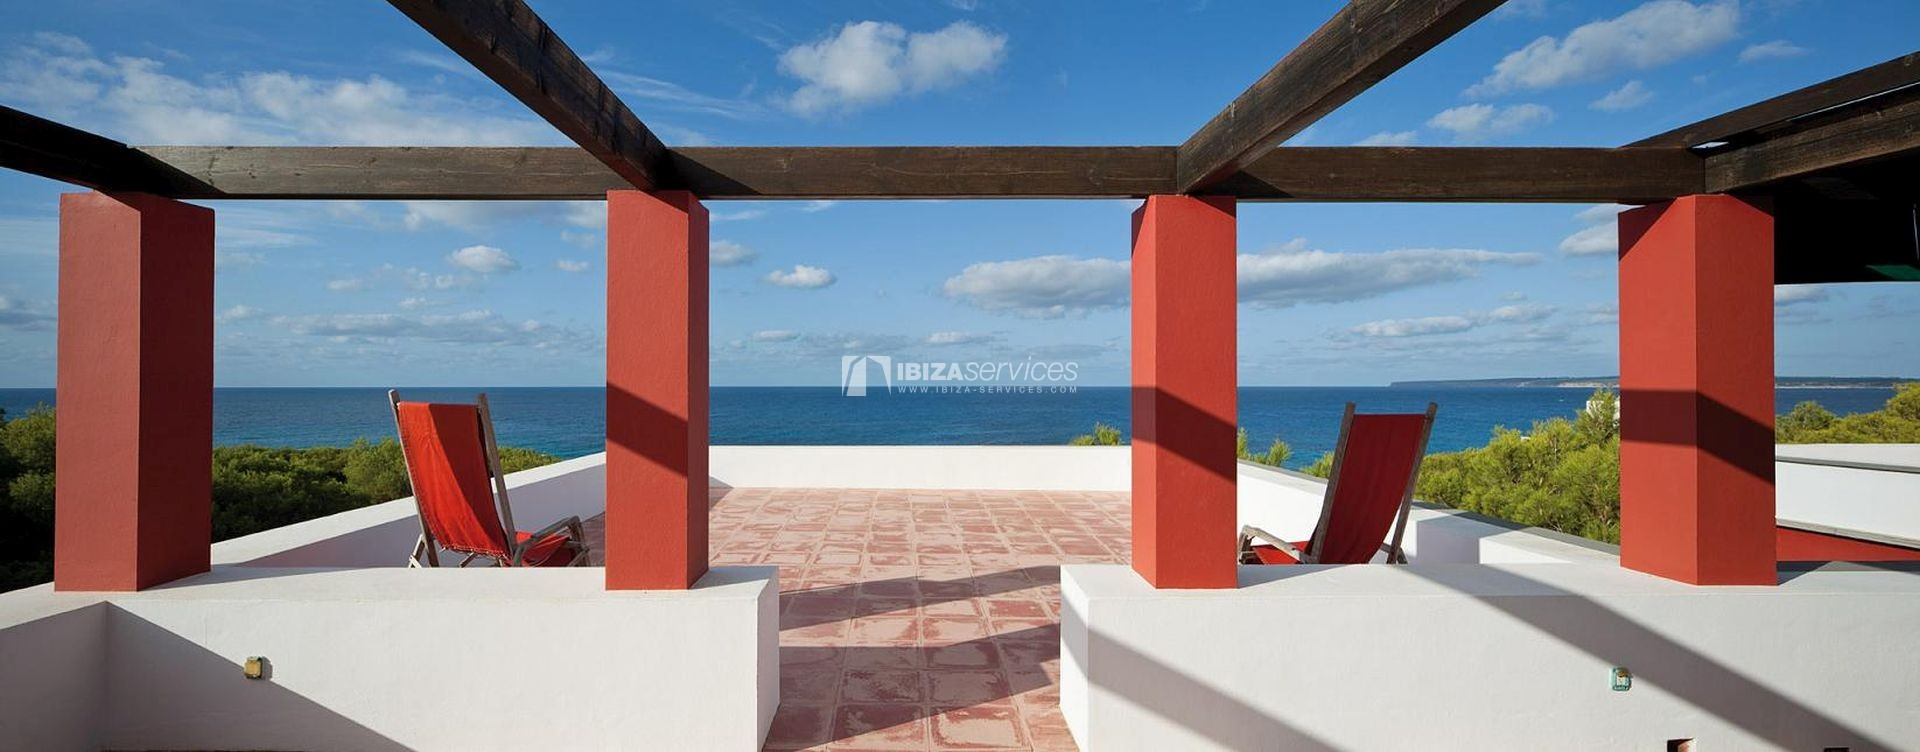 Villa for sale Formentera with amazing sea views